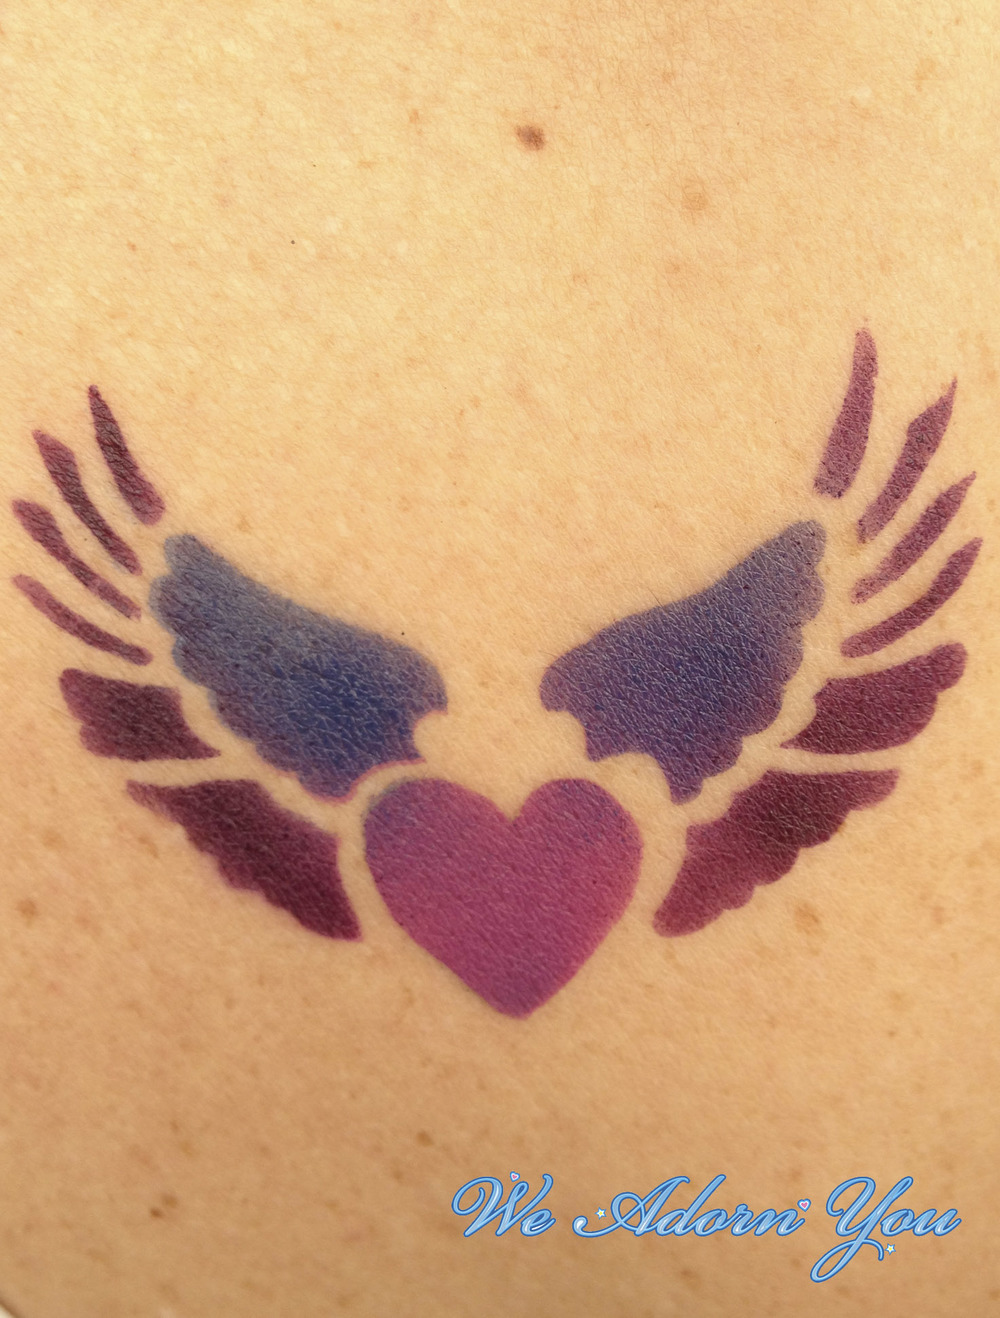 Airbrush Tattoo Heart Wings - We Adorn You.jpg